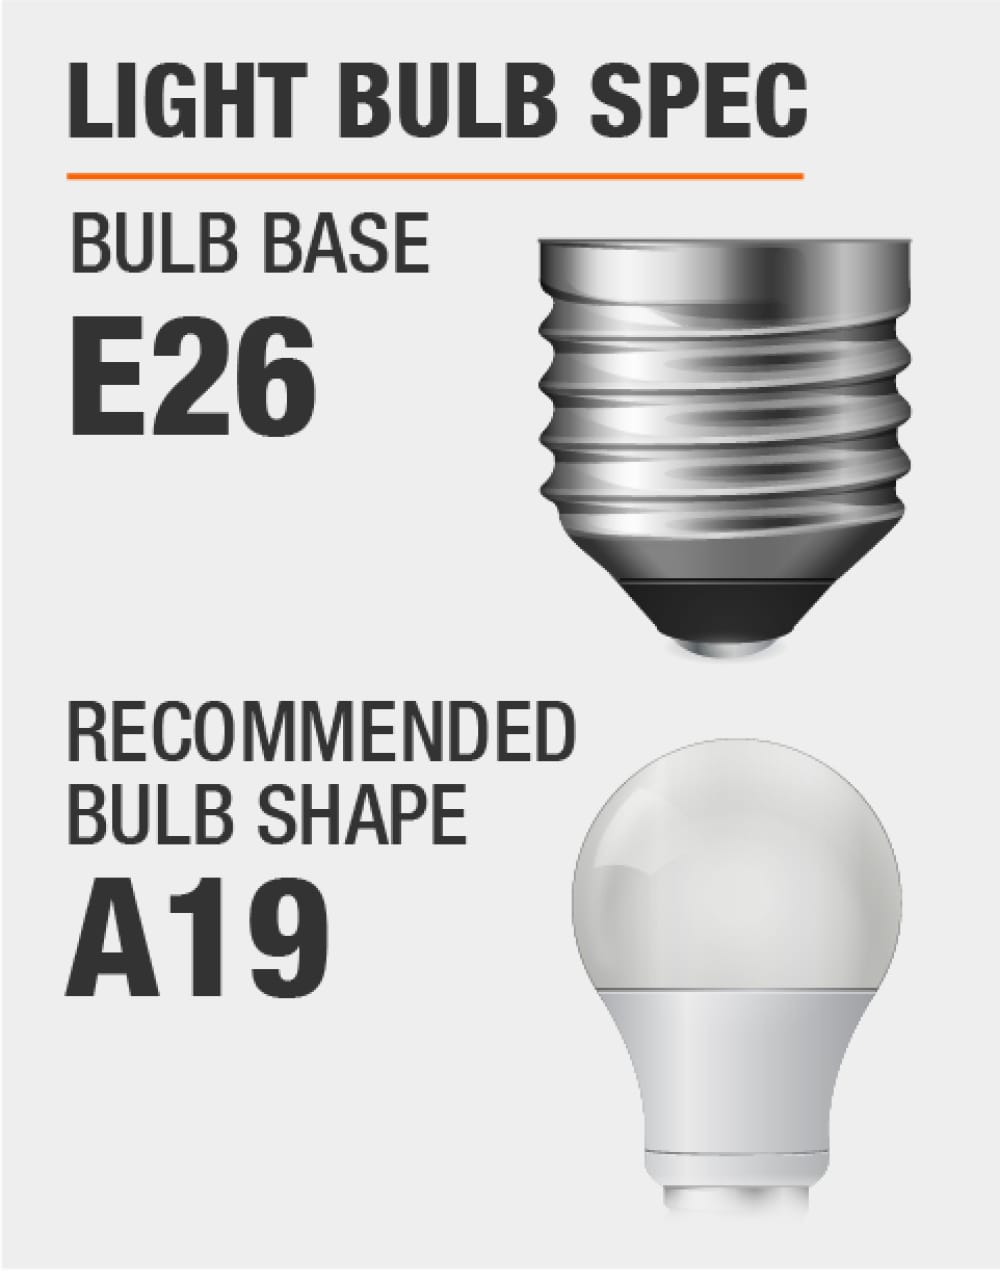 this fixture fits bulbs with E26 base and recommended bulb shape is A19